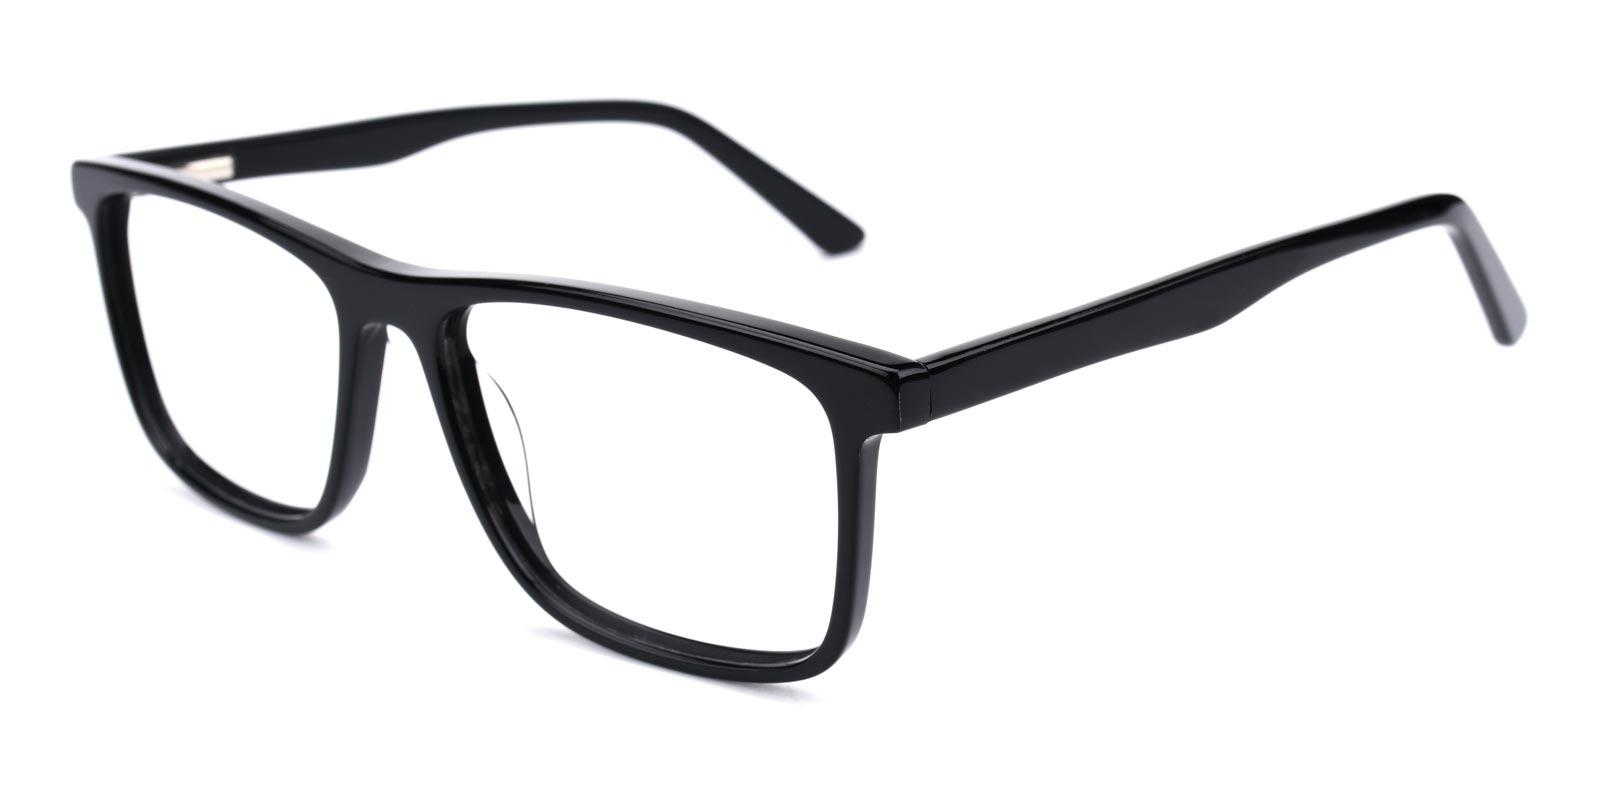 Tripper-Black-Square-Acetate-Eyeglasses-additional1